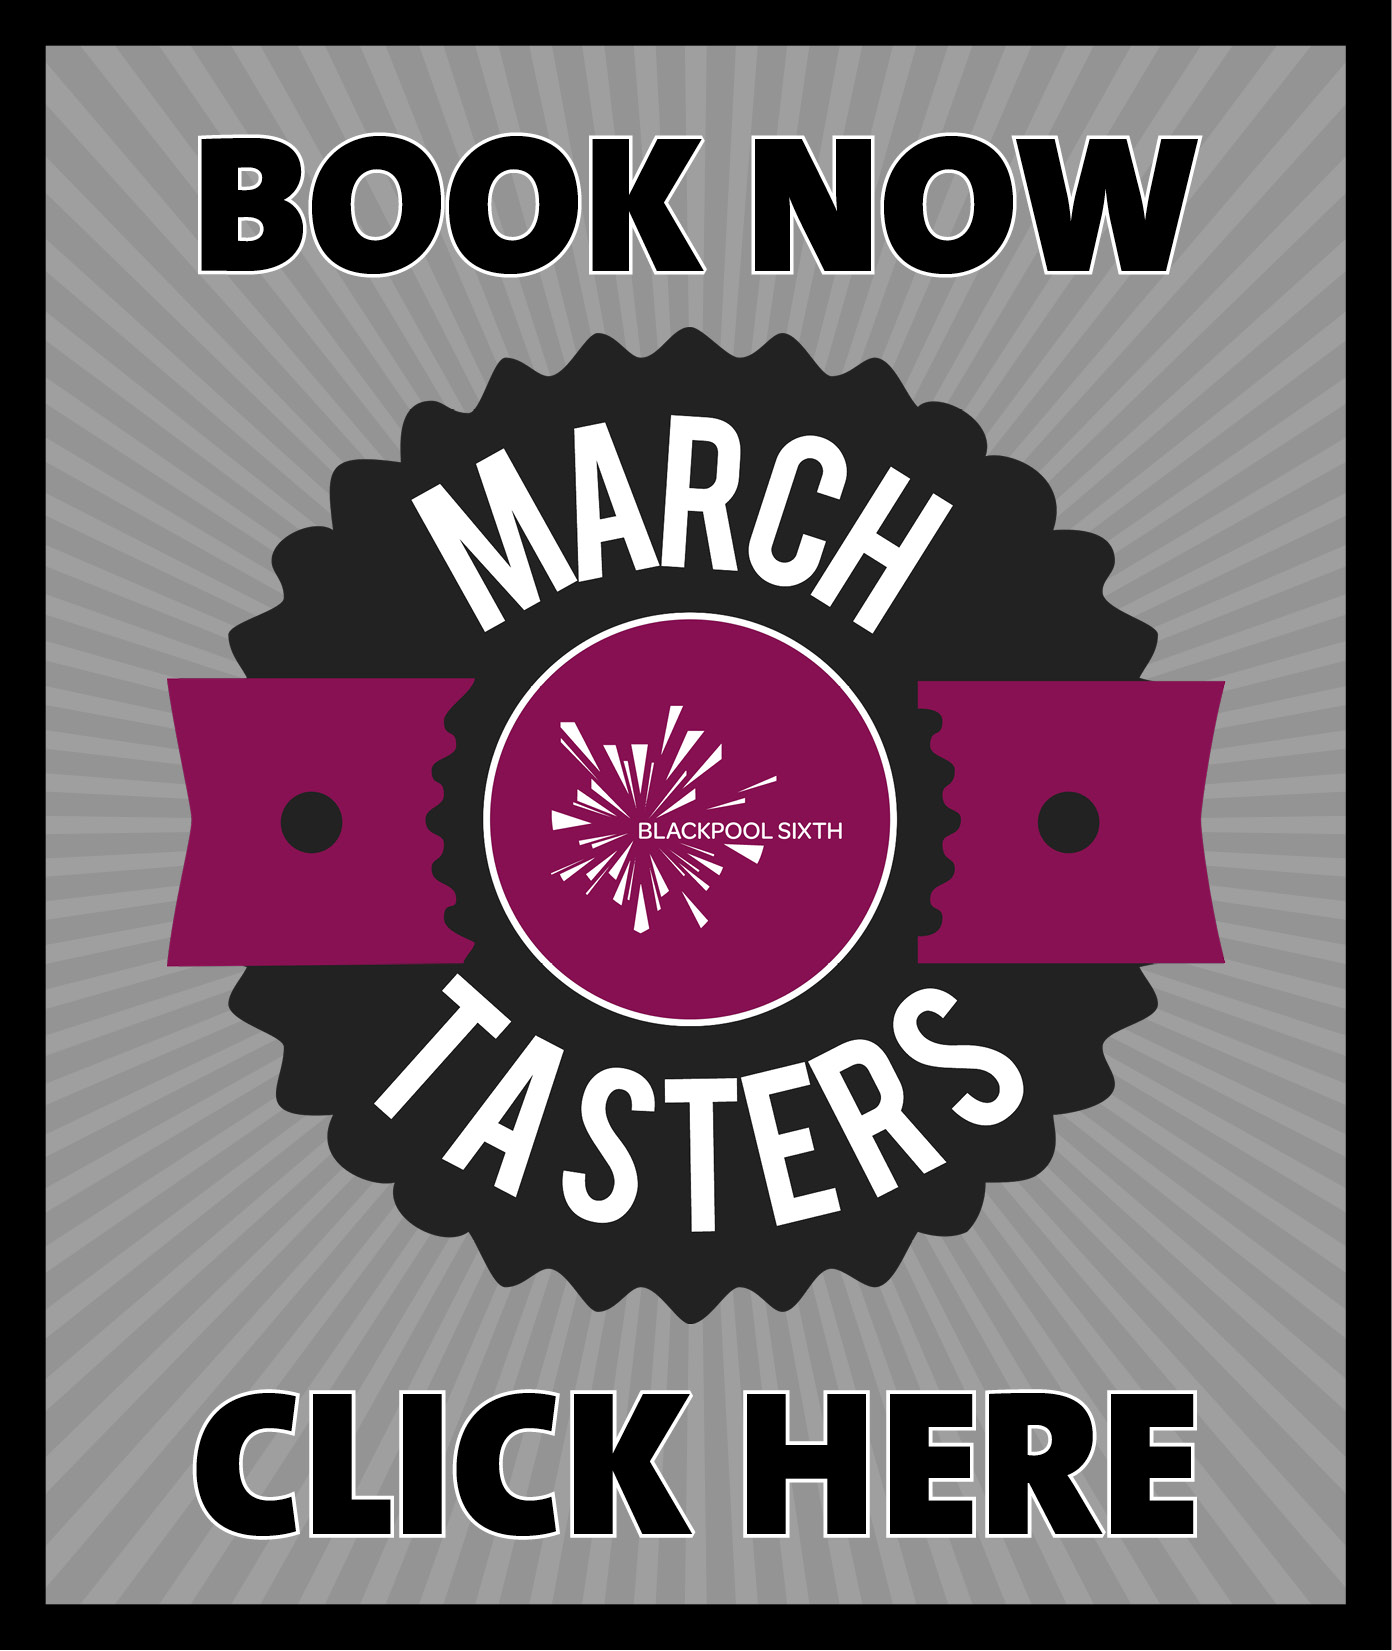 March tasters